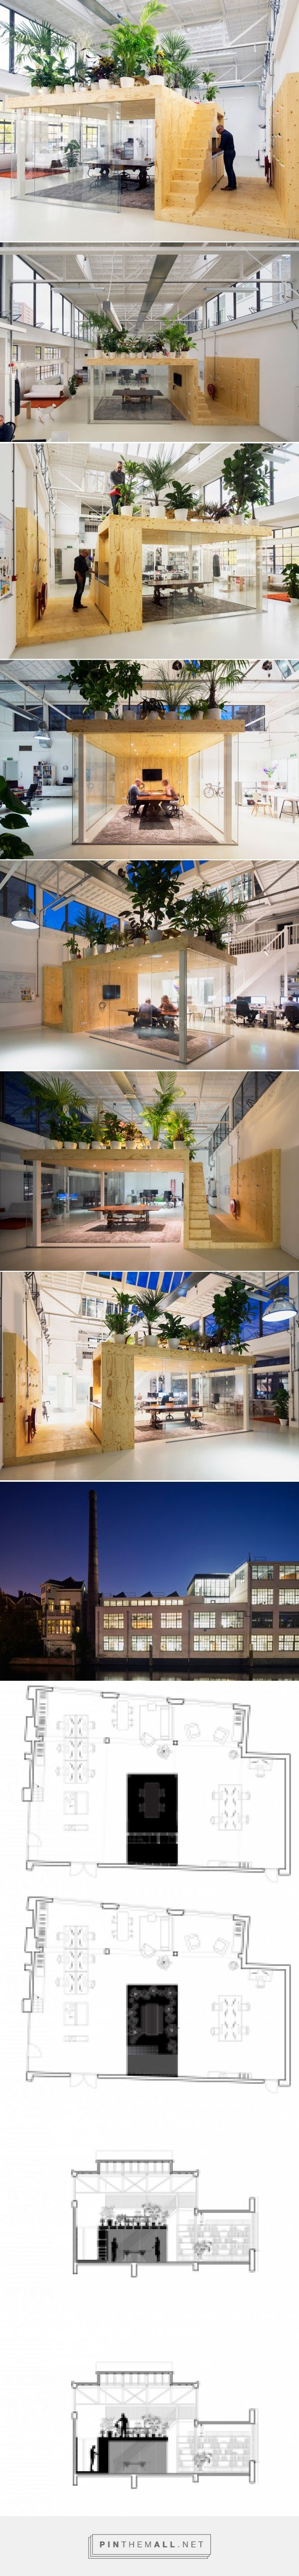 jvantspijker's renovated office includes an indoor garden - created via…